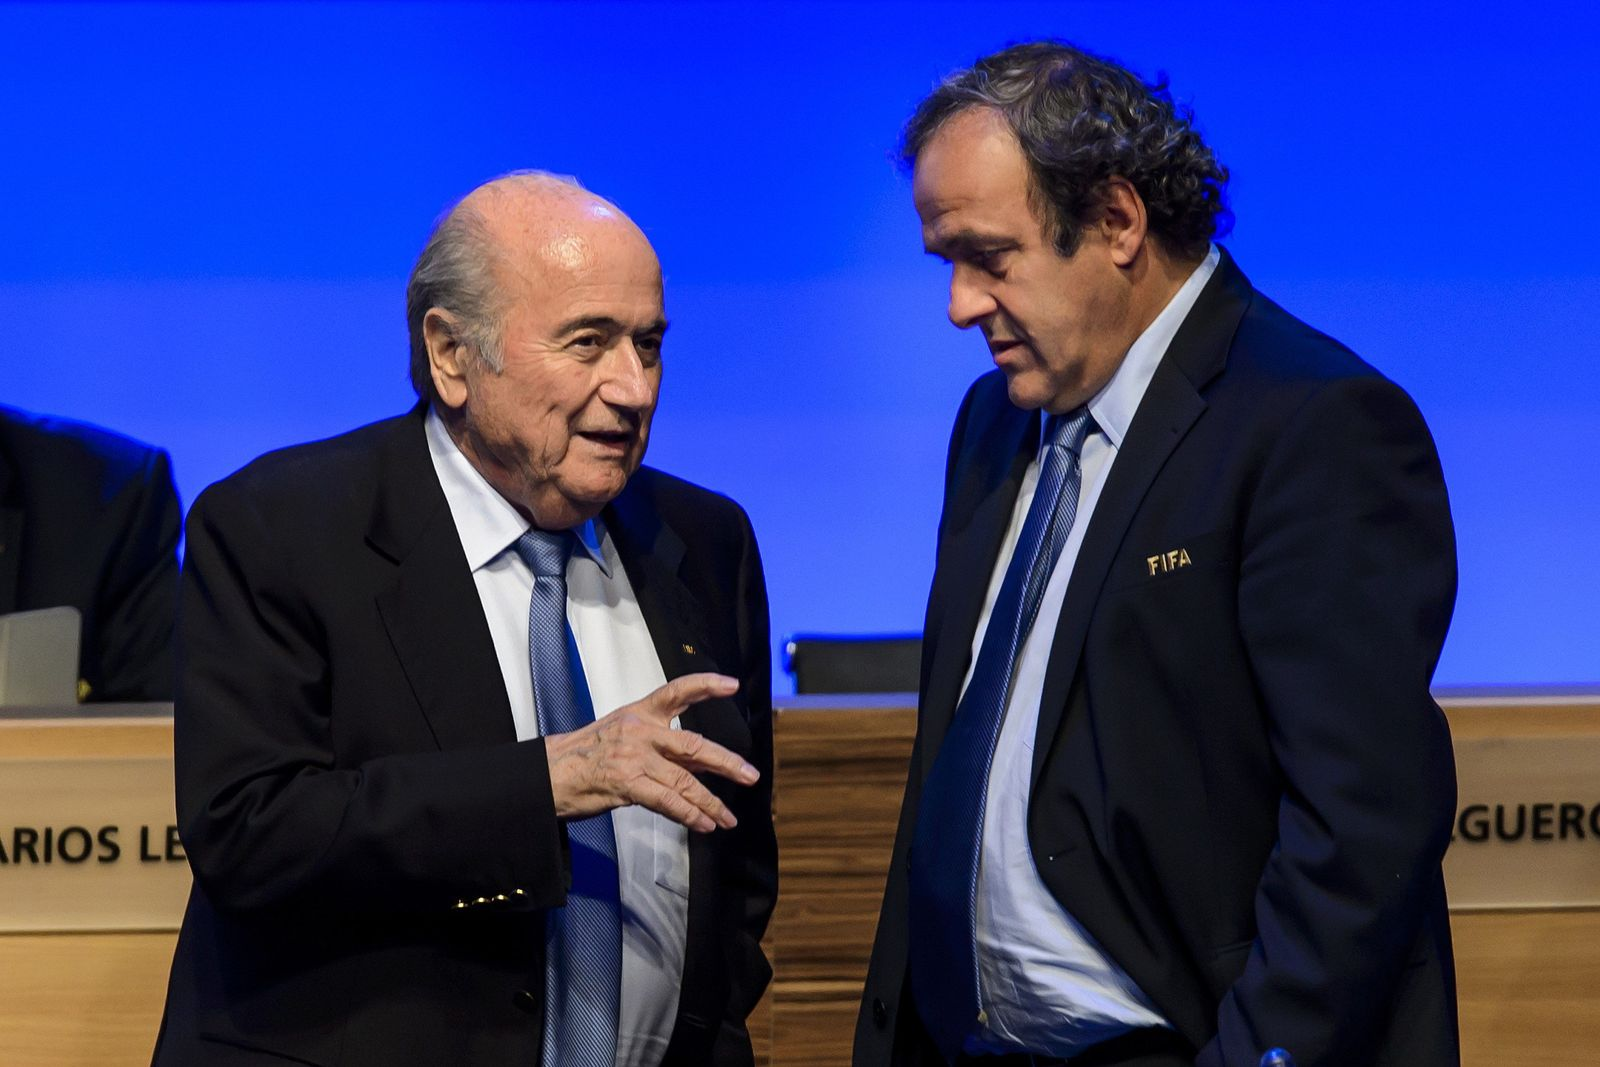 FBL-CORRUPTION-FIFA-UEFA-BLATTER-PLATINI-FILES